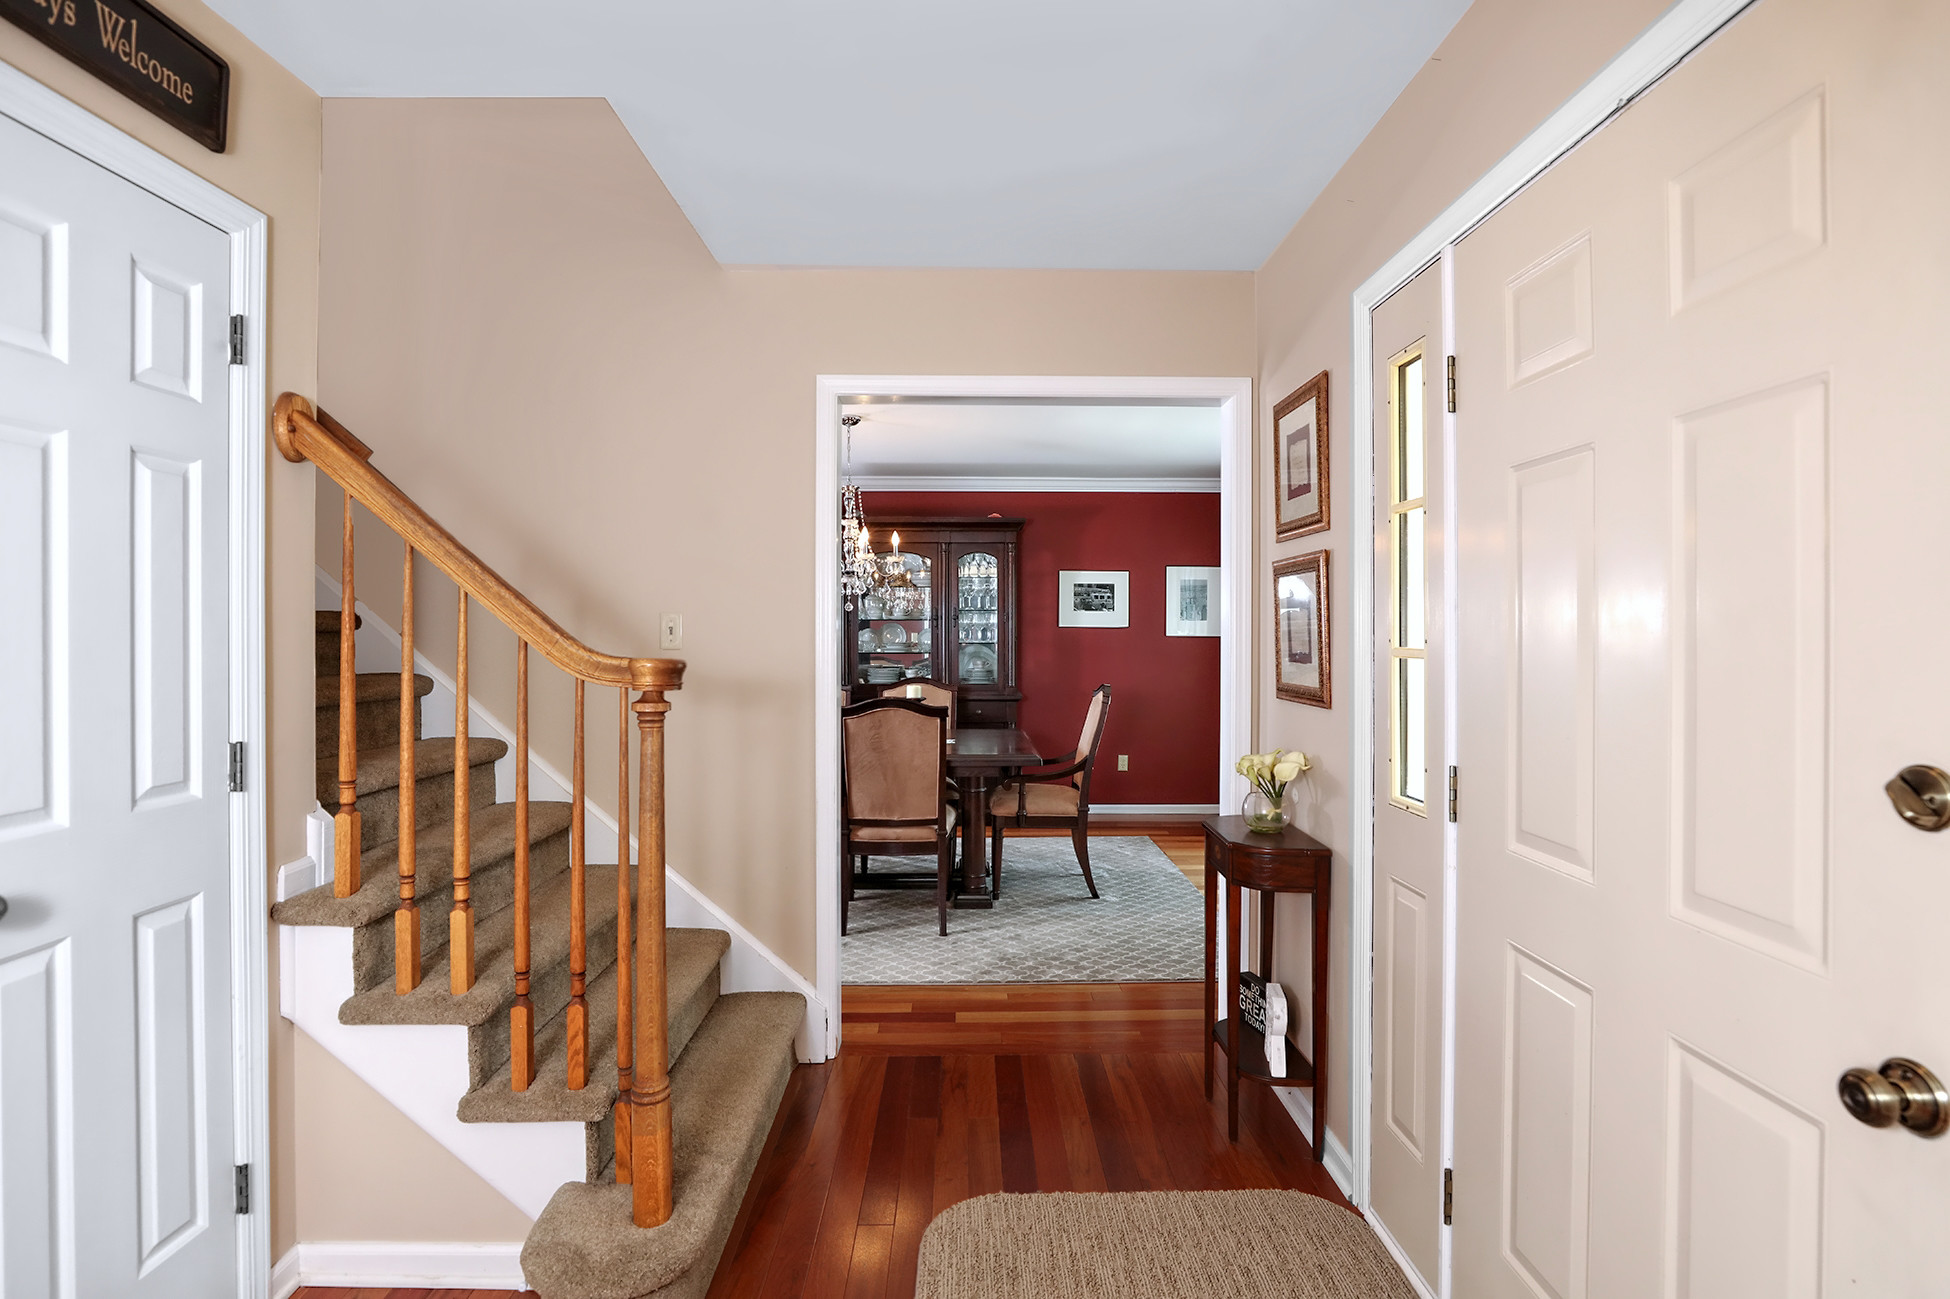 Hardwood Flooring Flemington Nj Of 10 Packers island Ln Flemington Nj 08822 Realestate Com In ismex55k93cobh0000000000